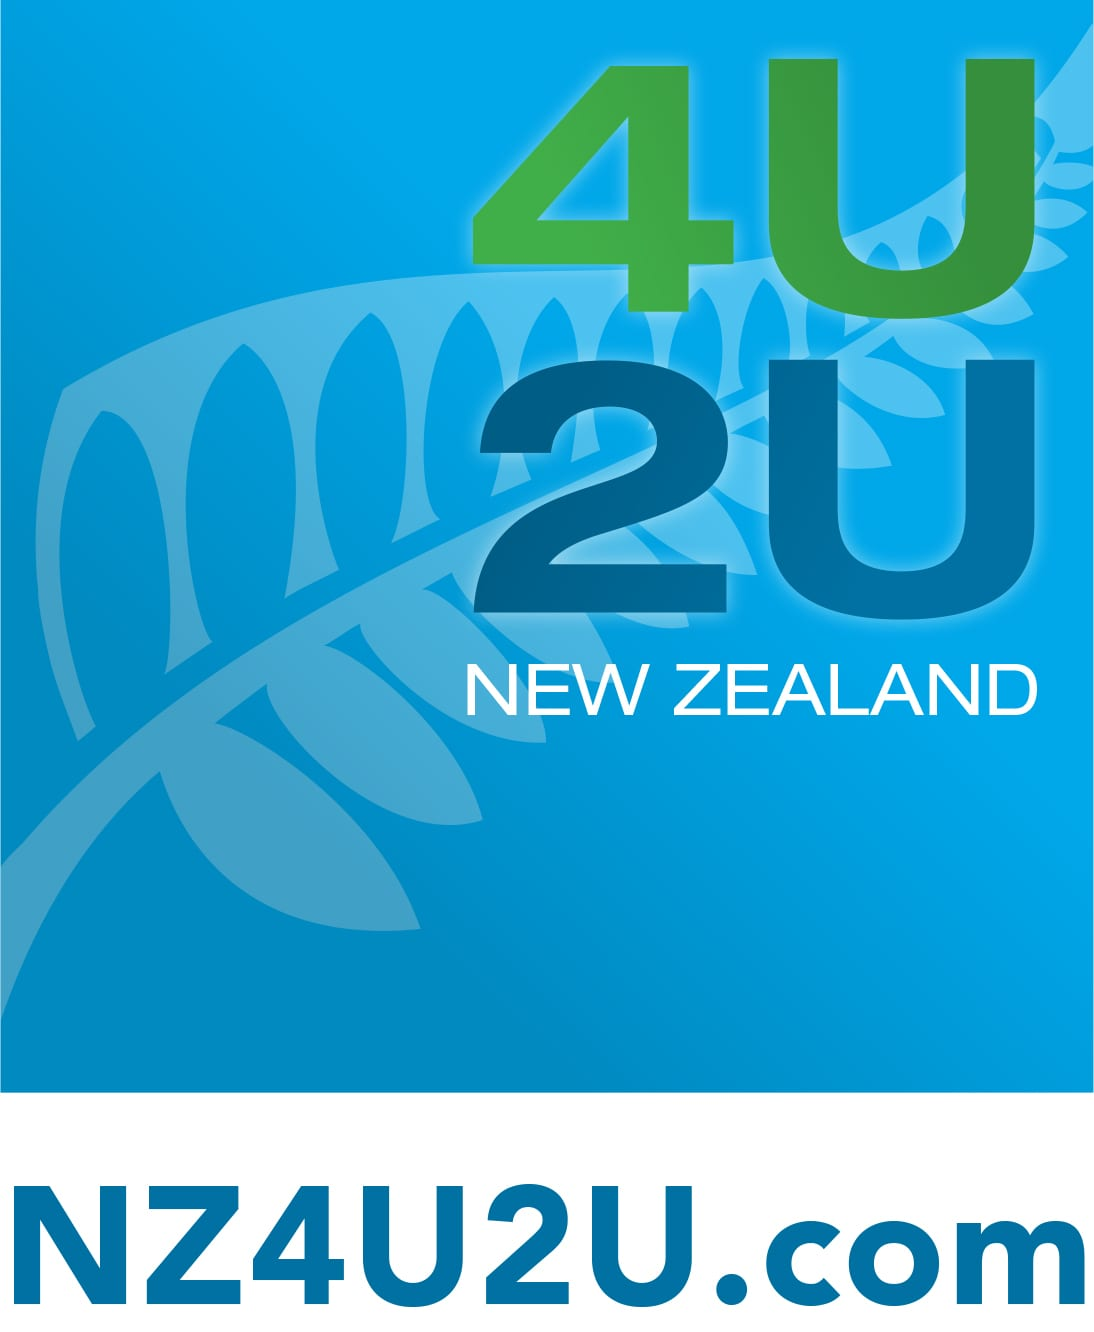 Nz4u2u || Caravan for hire Christchurch, New Zealand